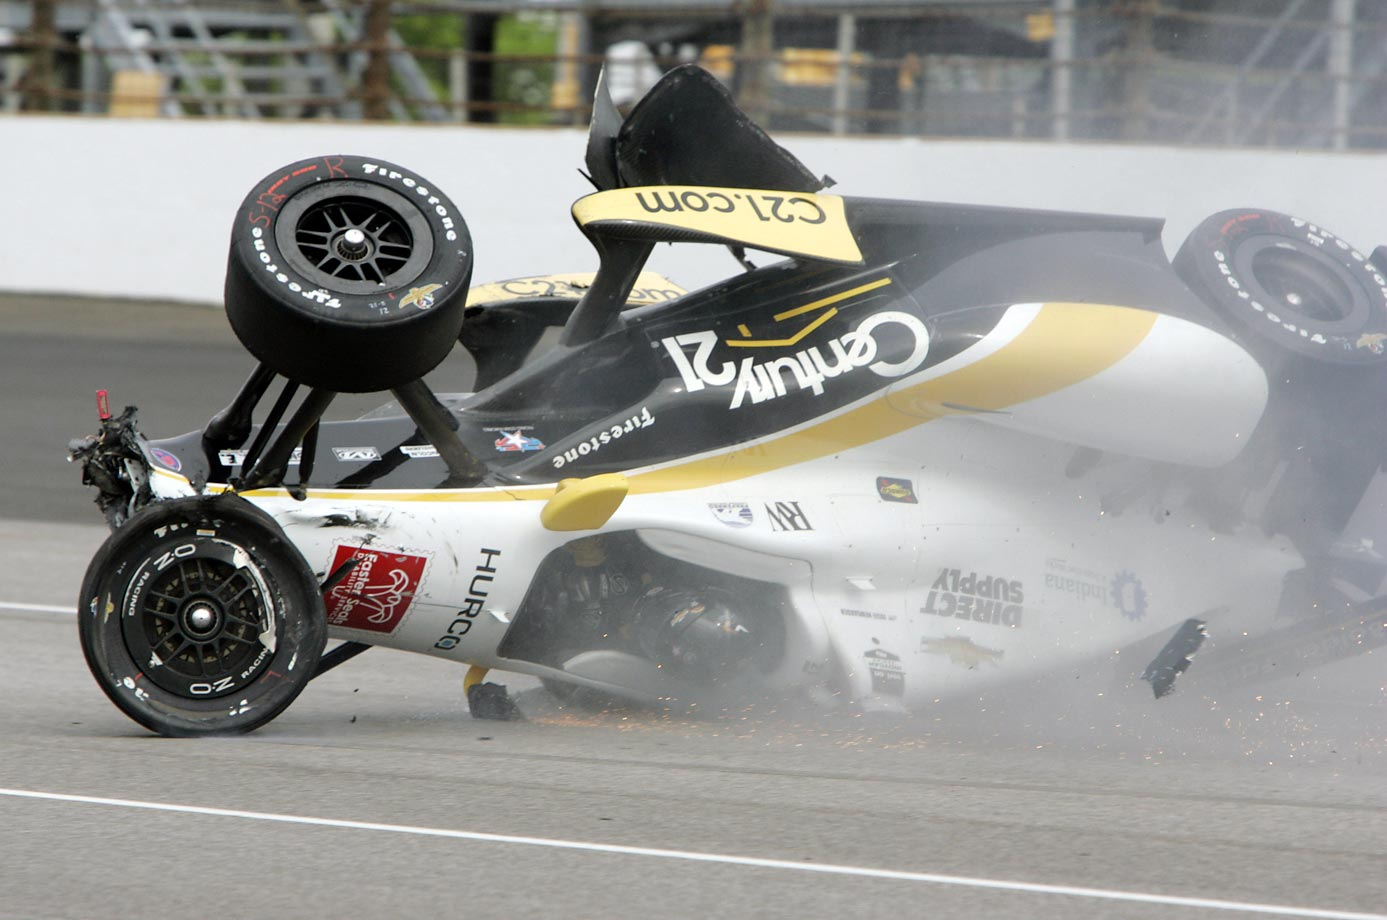 Another crash at practice for the Indy 500 -- Josef Newgarden slides down the track after hitting the wall.